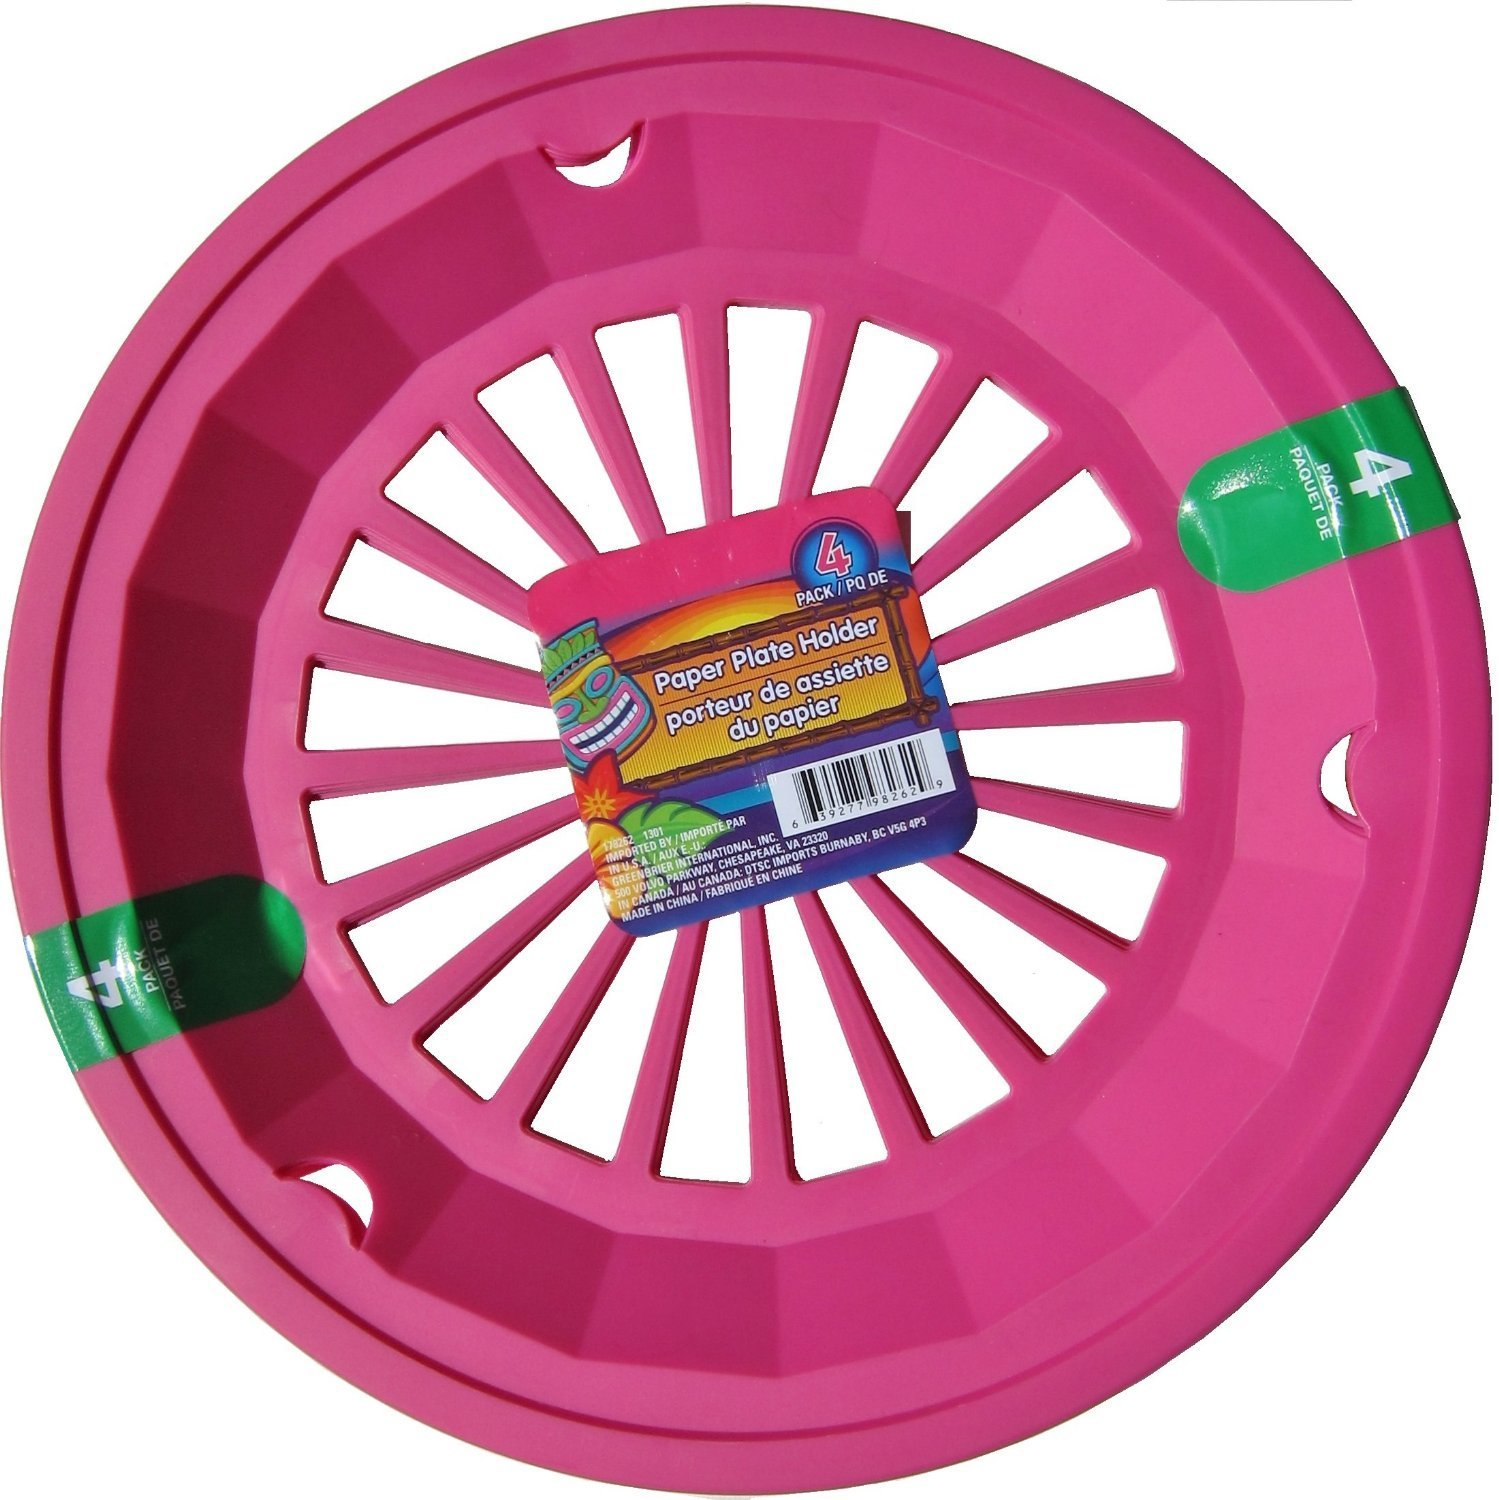 Amazon.com | Hot Pink 10-3/8\  Plastic Paper Plate Holders Set of 4 Chargers Accent Plates  sc 1 st  Amazon.com & Amazon.com | Hot Pink 10-3/8"|1499|1500|?|511dfa6b4acf4b50d59da97f8df3b89d|False|UNLIKELY|0.34280744194984436